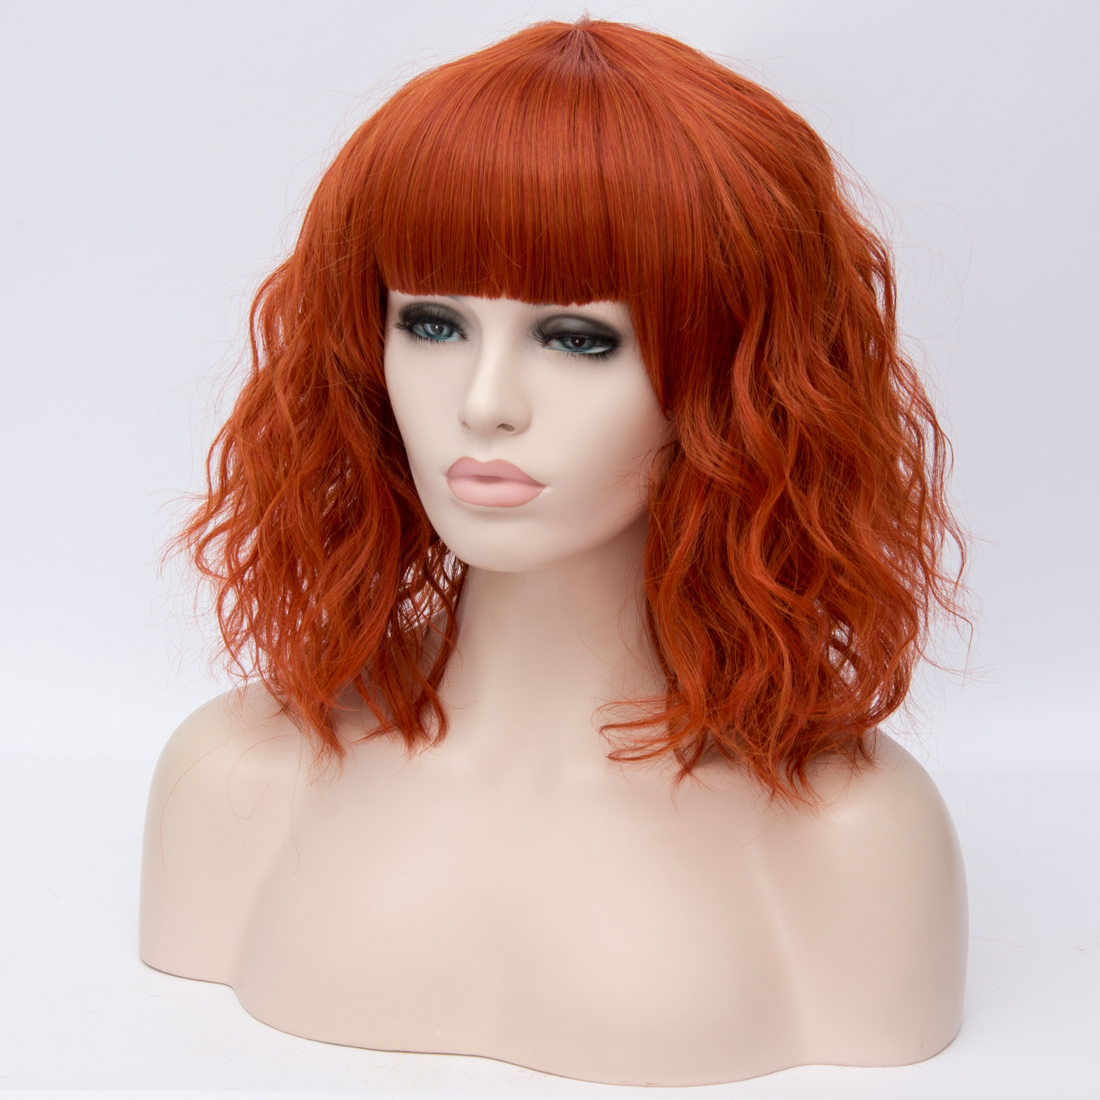 He3dbb40e2fc4464c830b6ebae21e8d0f4 - Similler Short Synthetic Wig for Women Cosplay Curly Hair Heat Resistance Ombre Color Blue Purple Pink Green Orange Two Tones